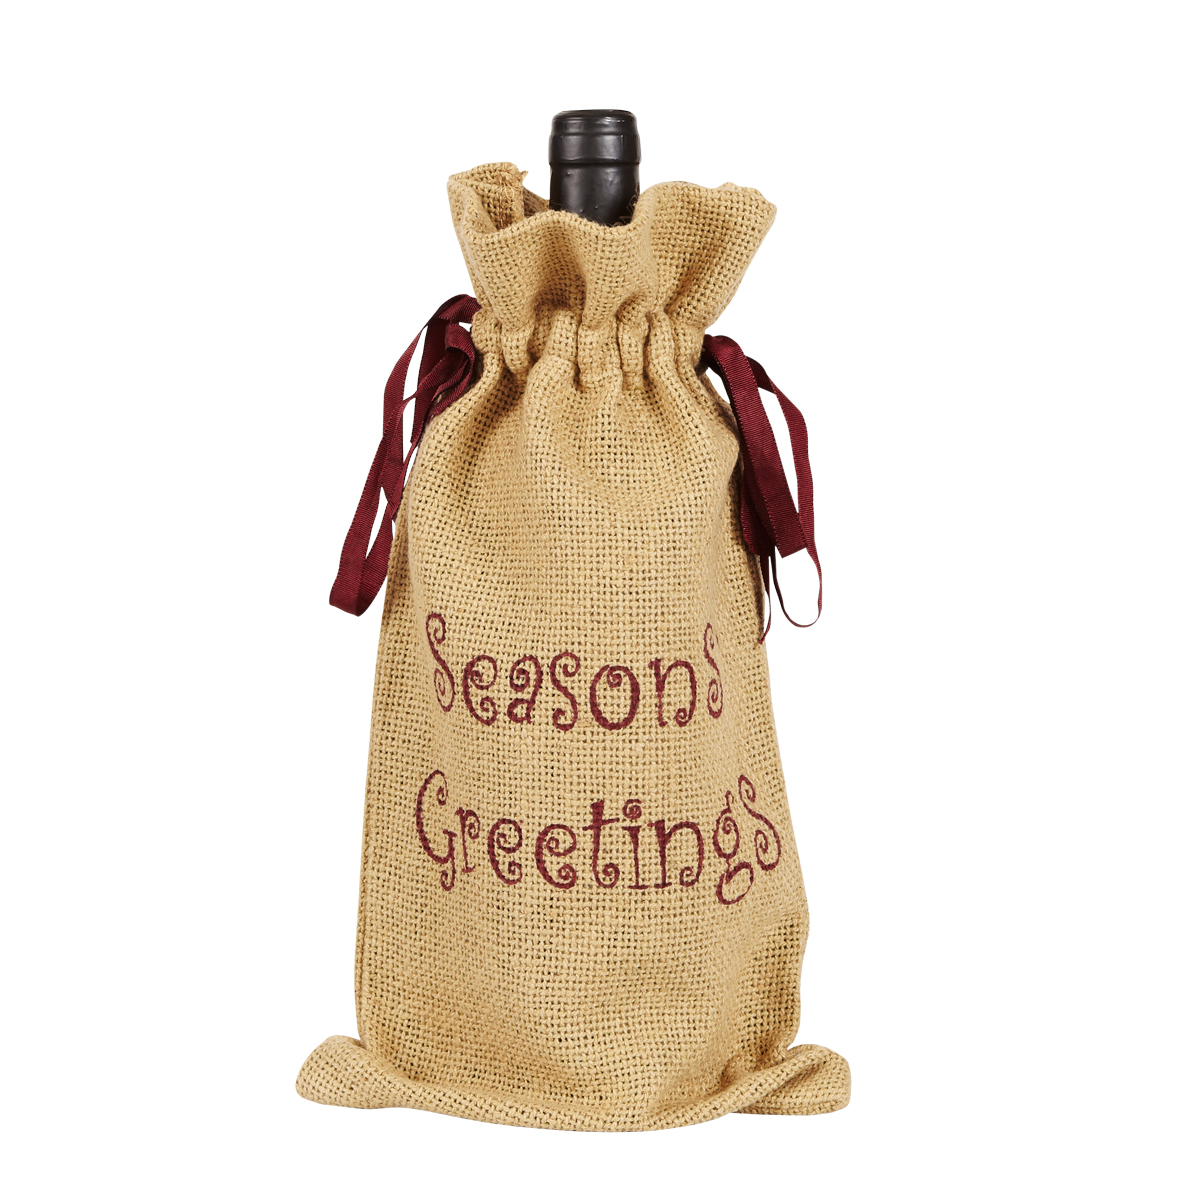 BURLAP NATURAL Wine Bag - Soft Cotton - Seasons Greetings - Country - VHC Brands